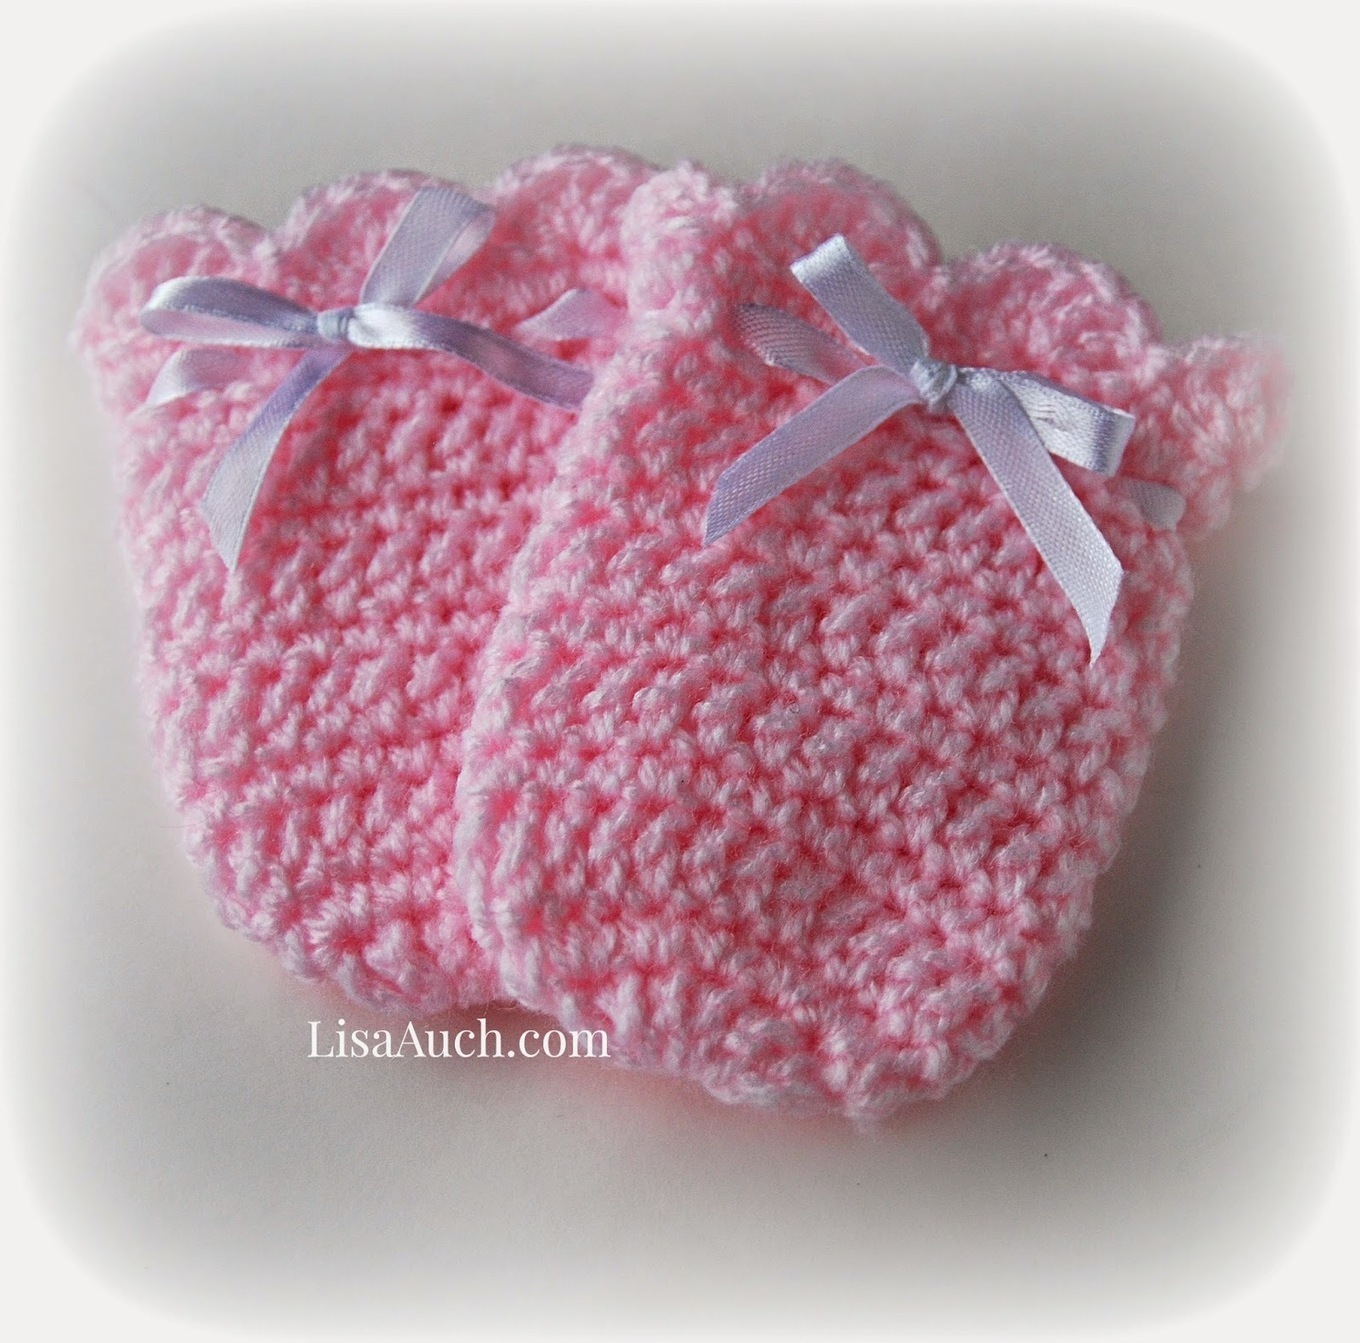 Free Crochet Patterns And Designs By Lisaauch